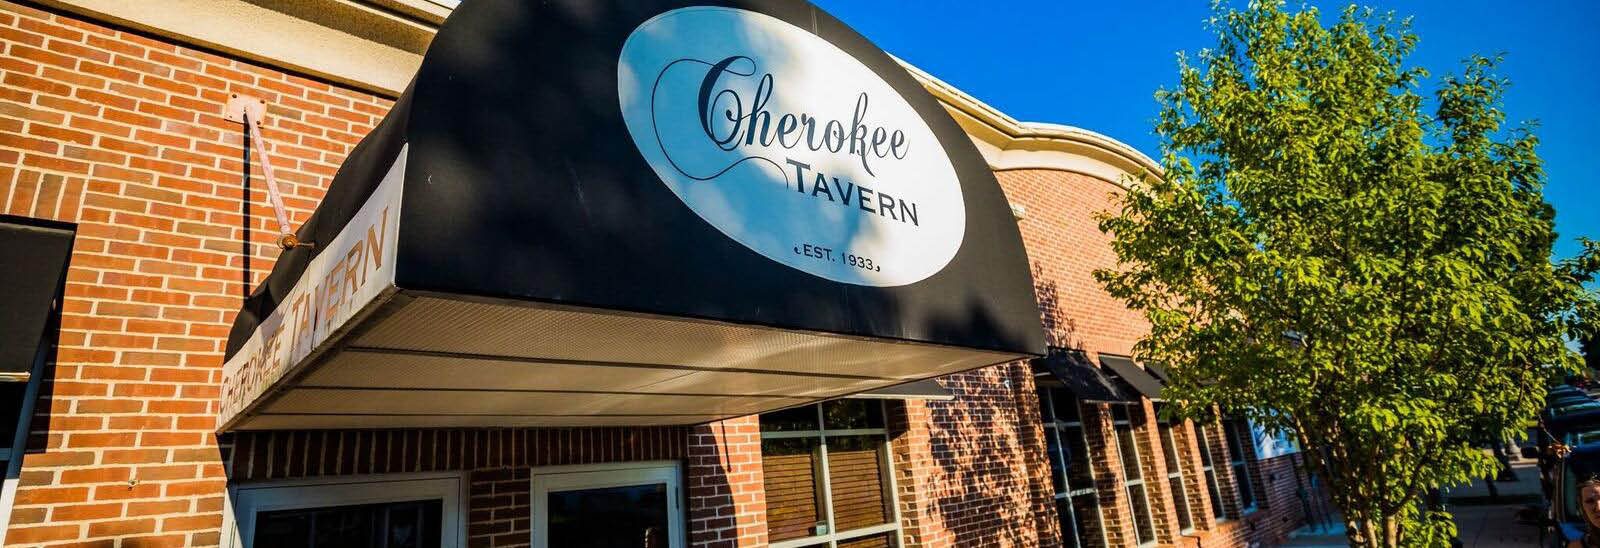 Cherokee Tavern in West St. Paul, MN